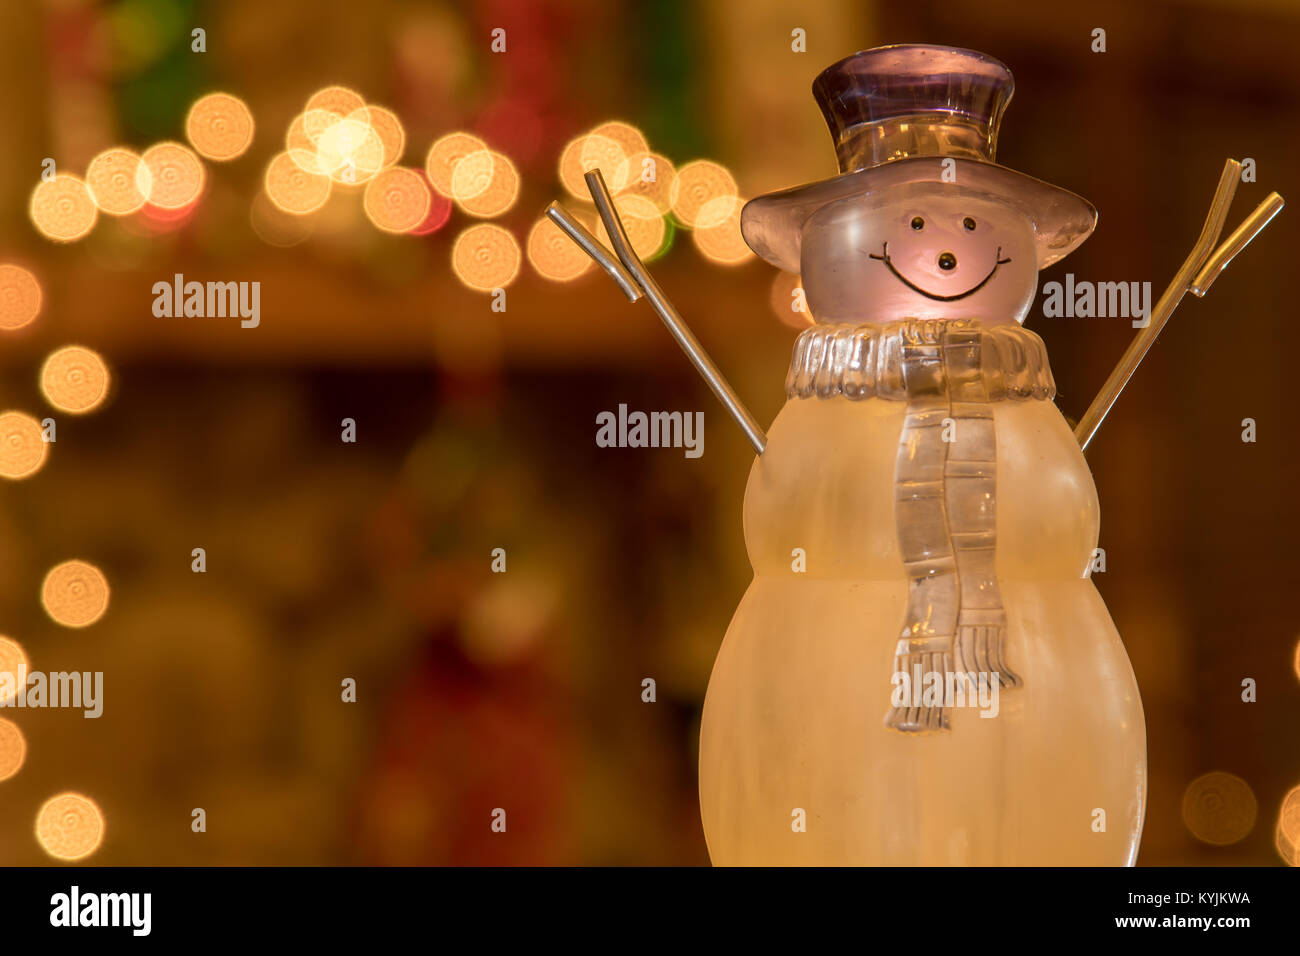 Winter Time Crystal Holiday Snowman in front of a fireplace mantle decorated for the holidays. Stock Photo